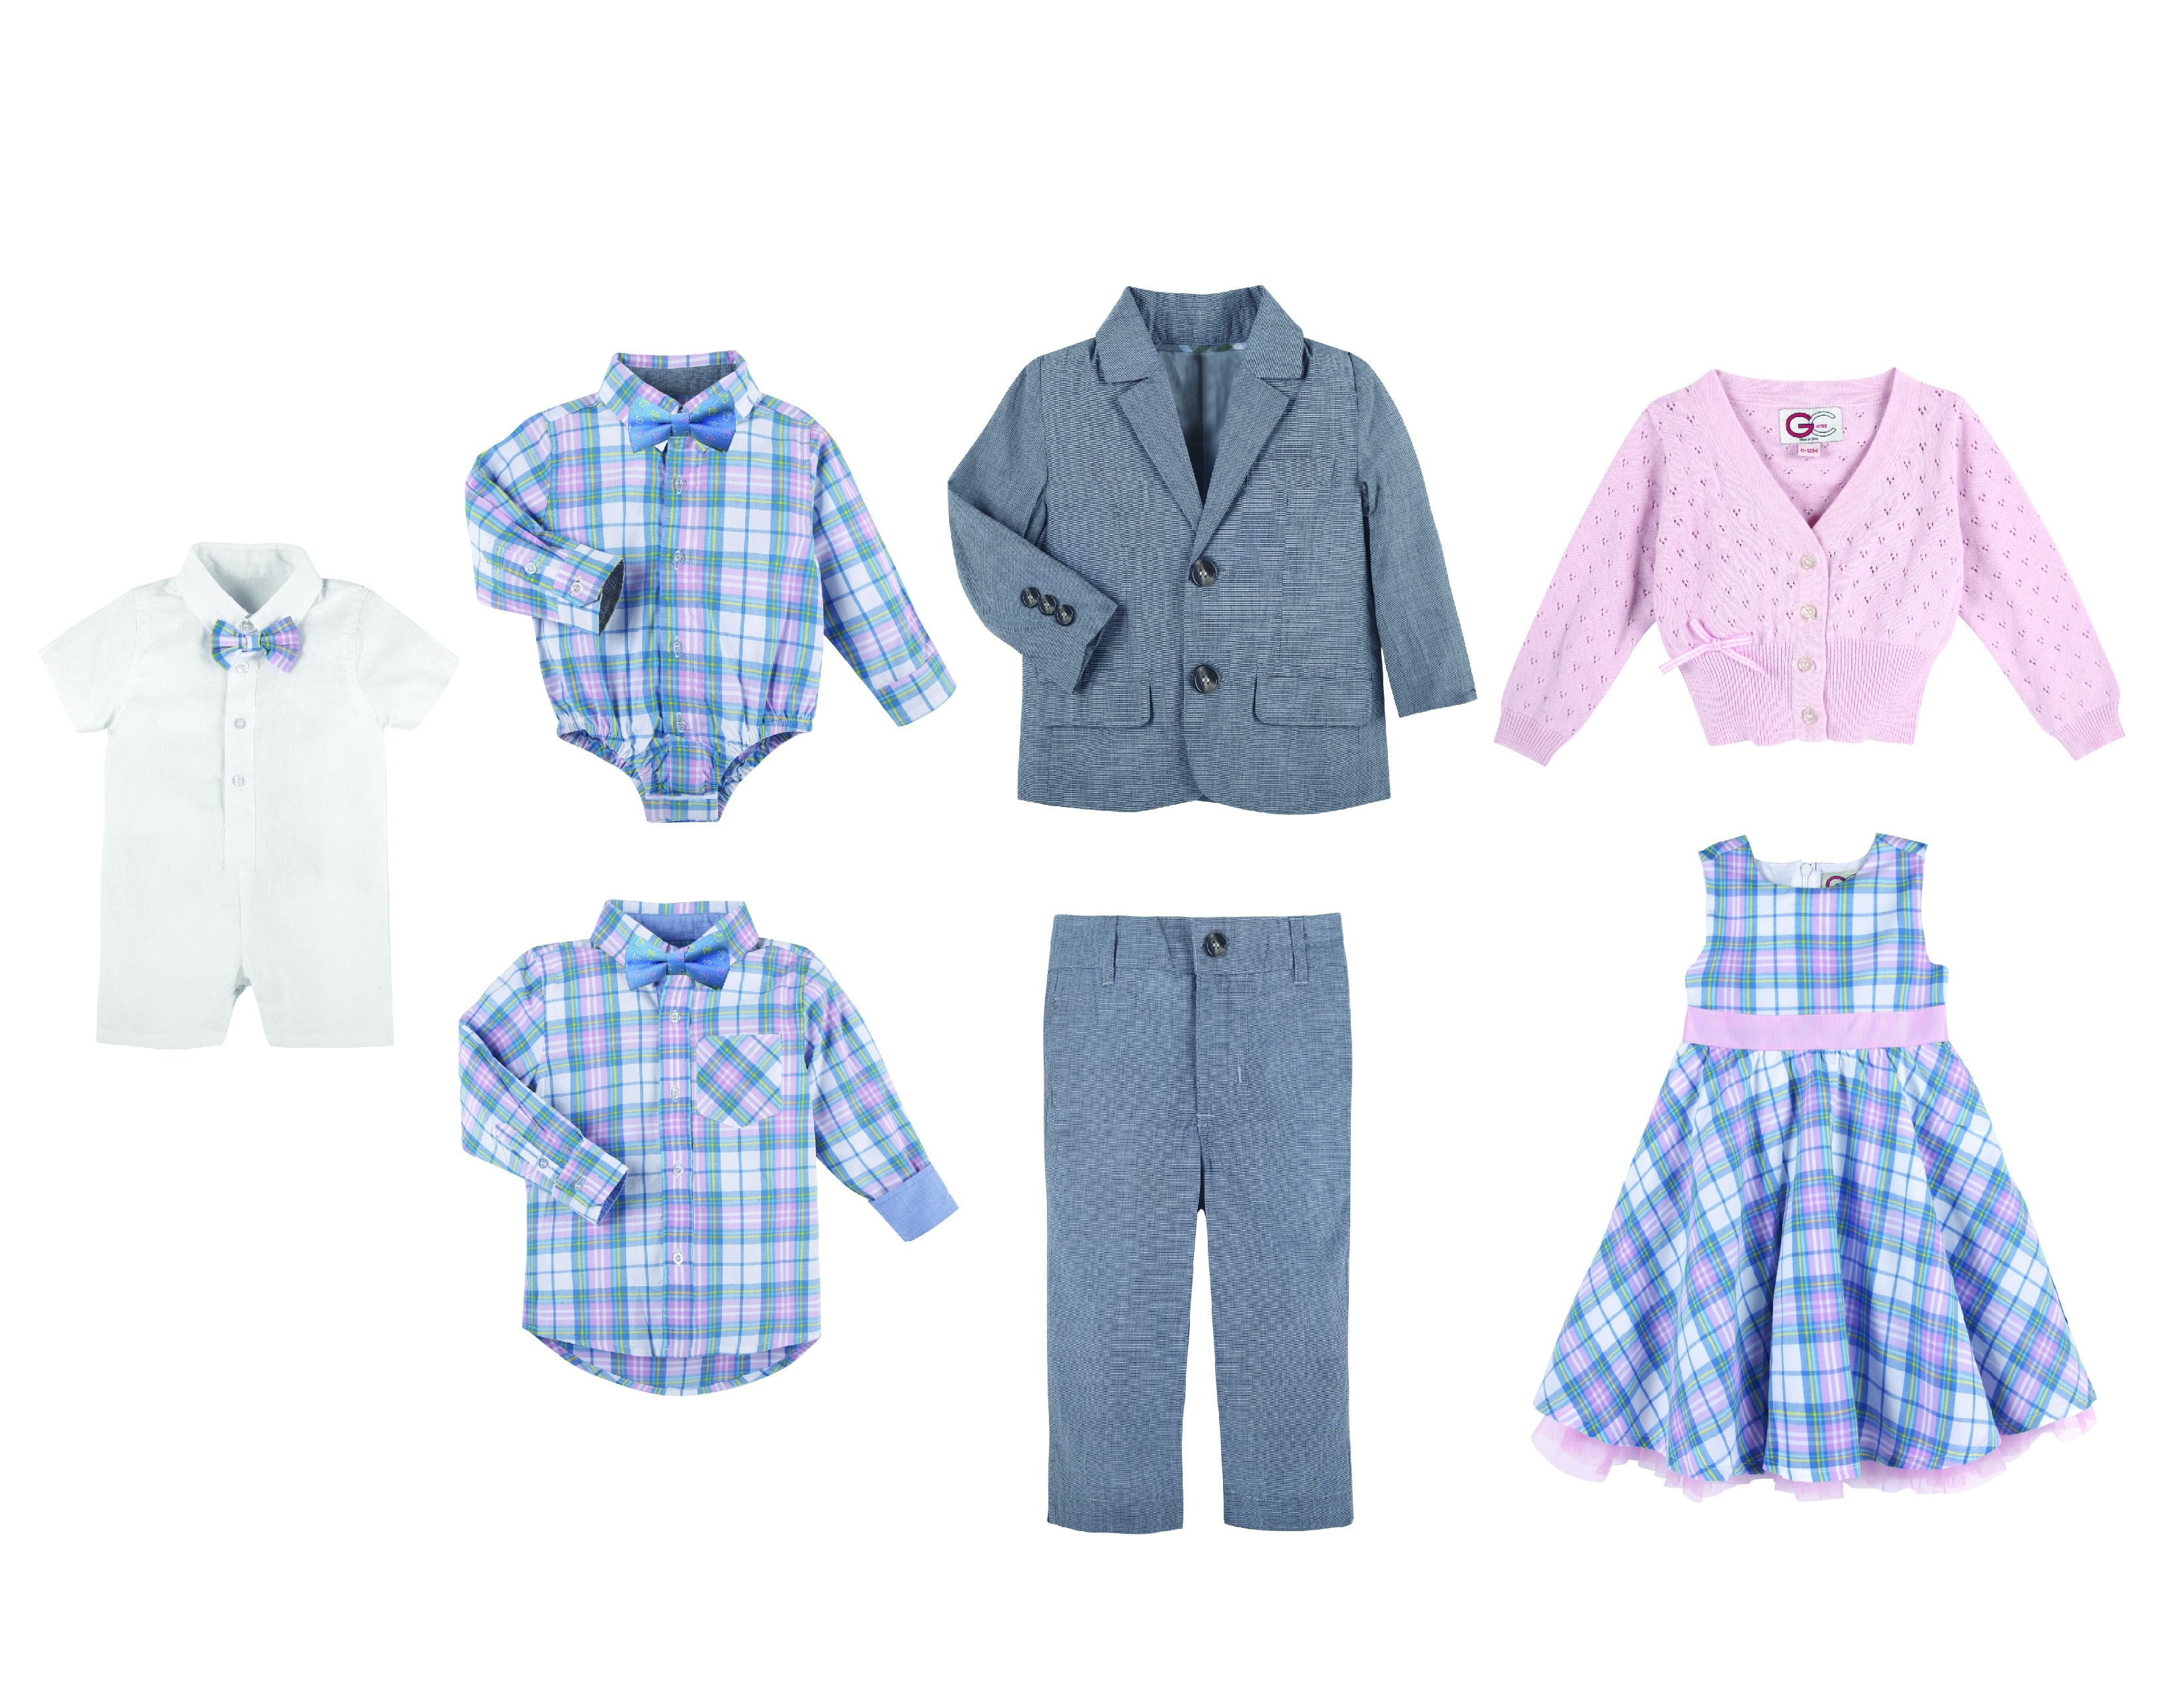 Gcutee adorable kids spring easter clothes at target